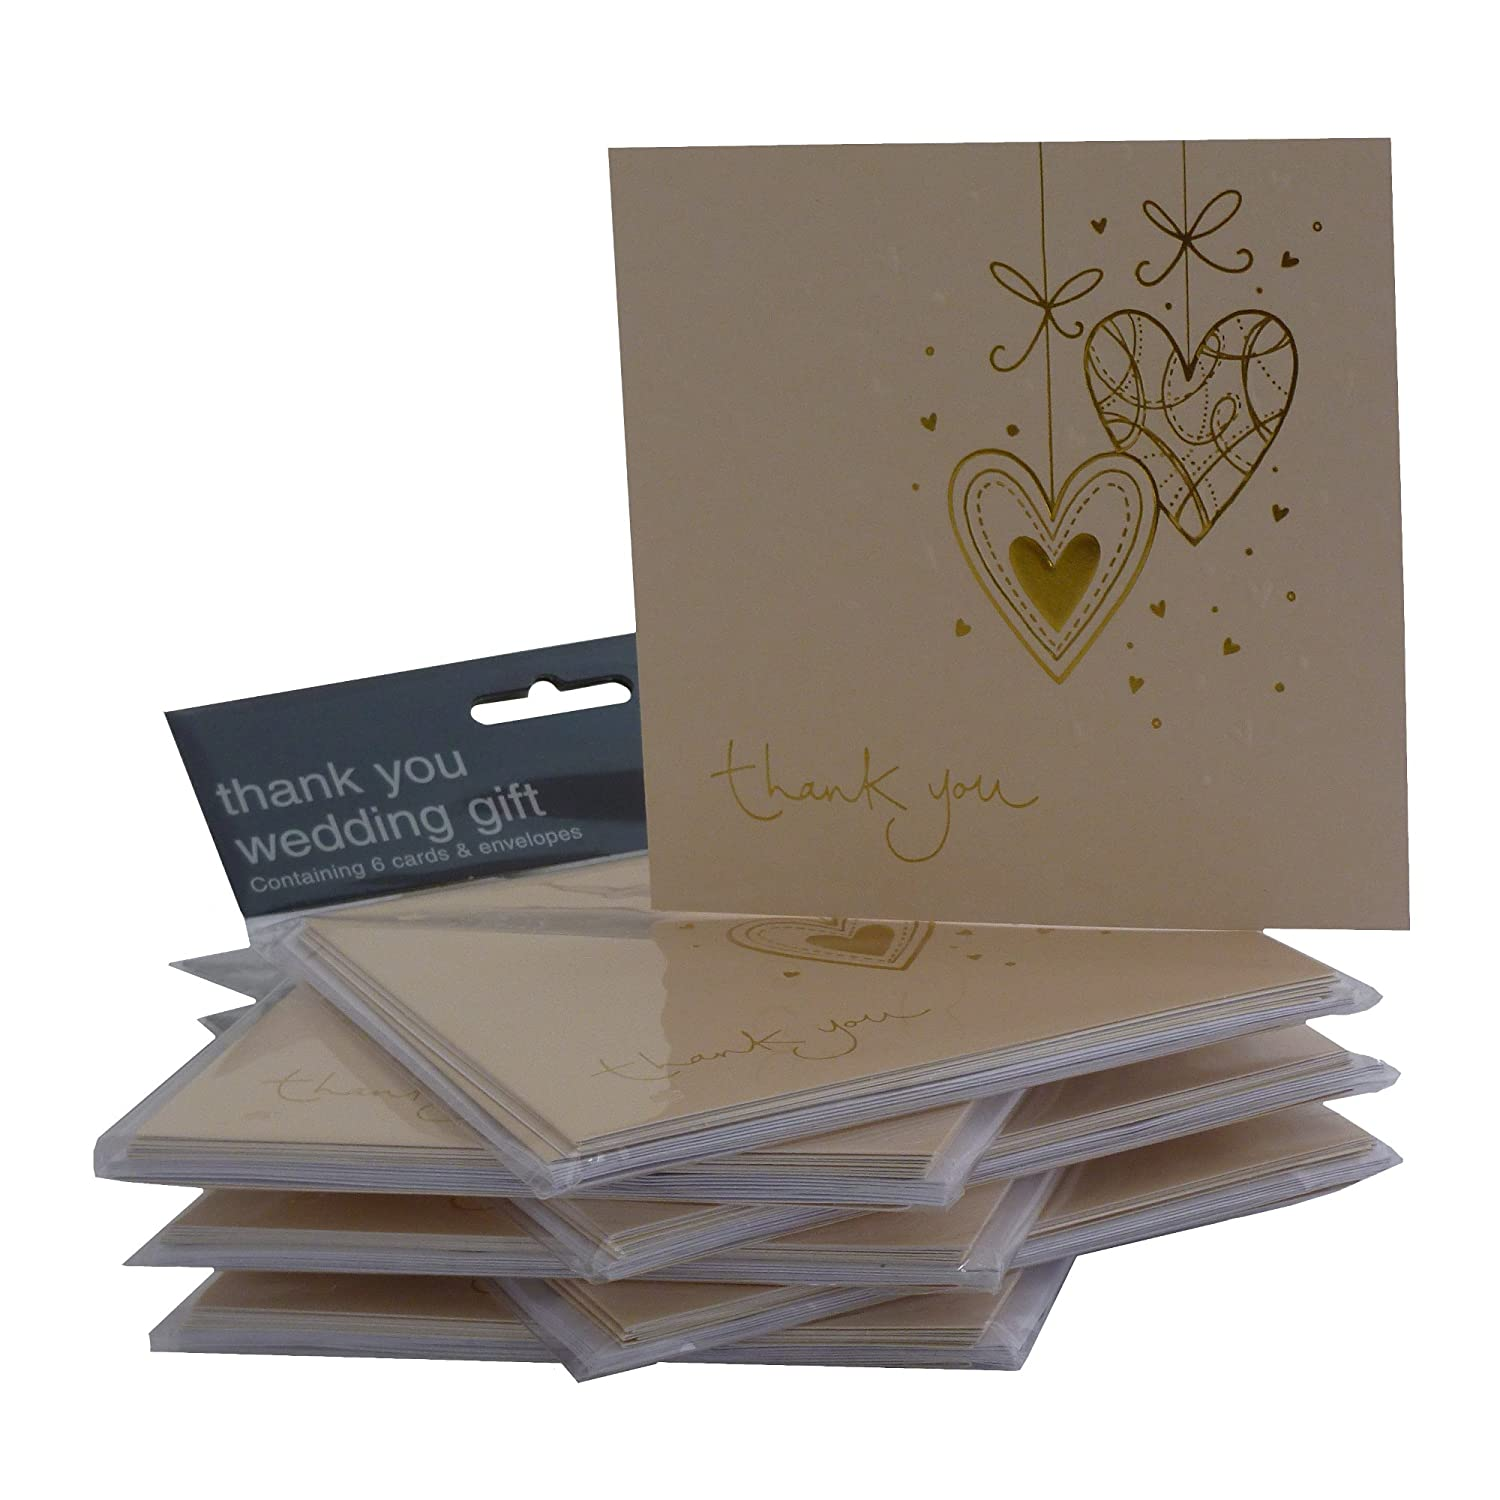 B thank you wedding cards Multipack Gold Heart Wedding Thank You Cards 36 Cards with Envelopes Amazon co uk Toys Games